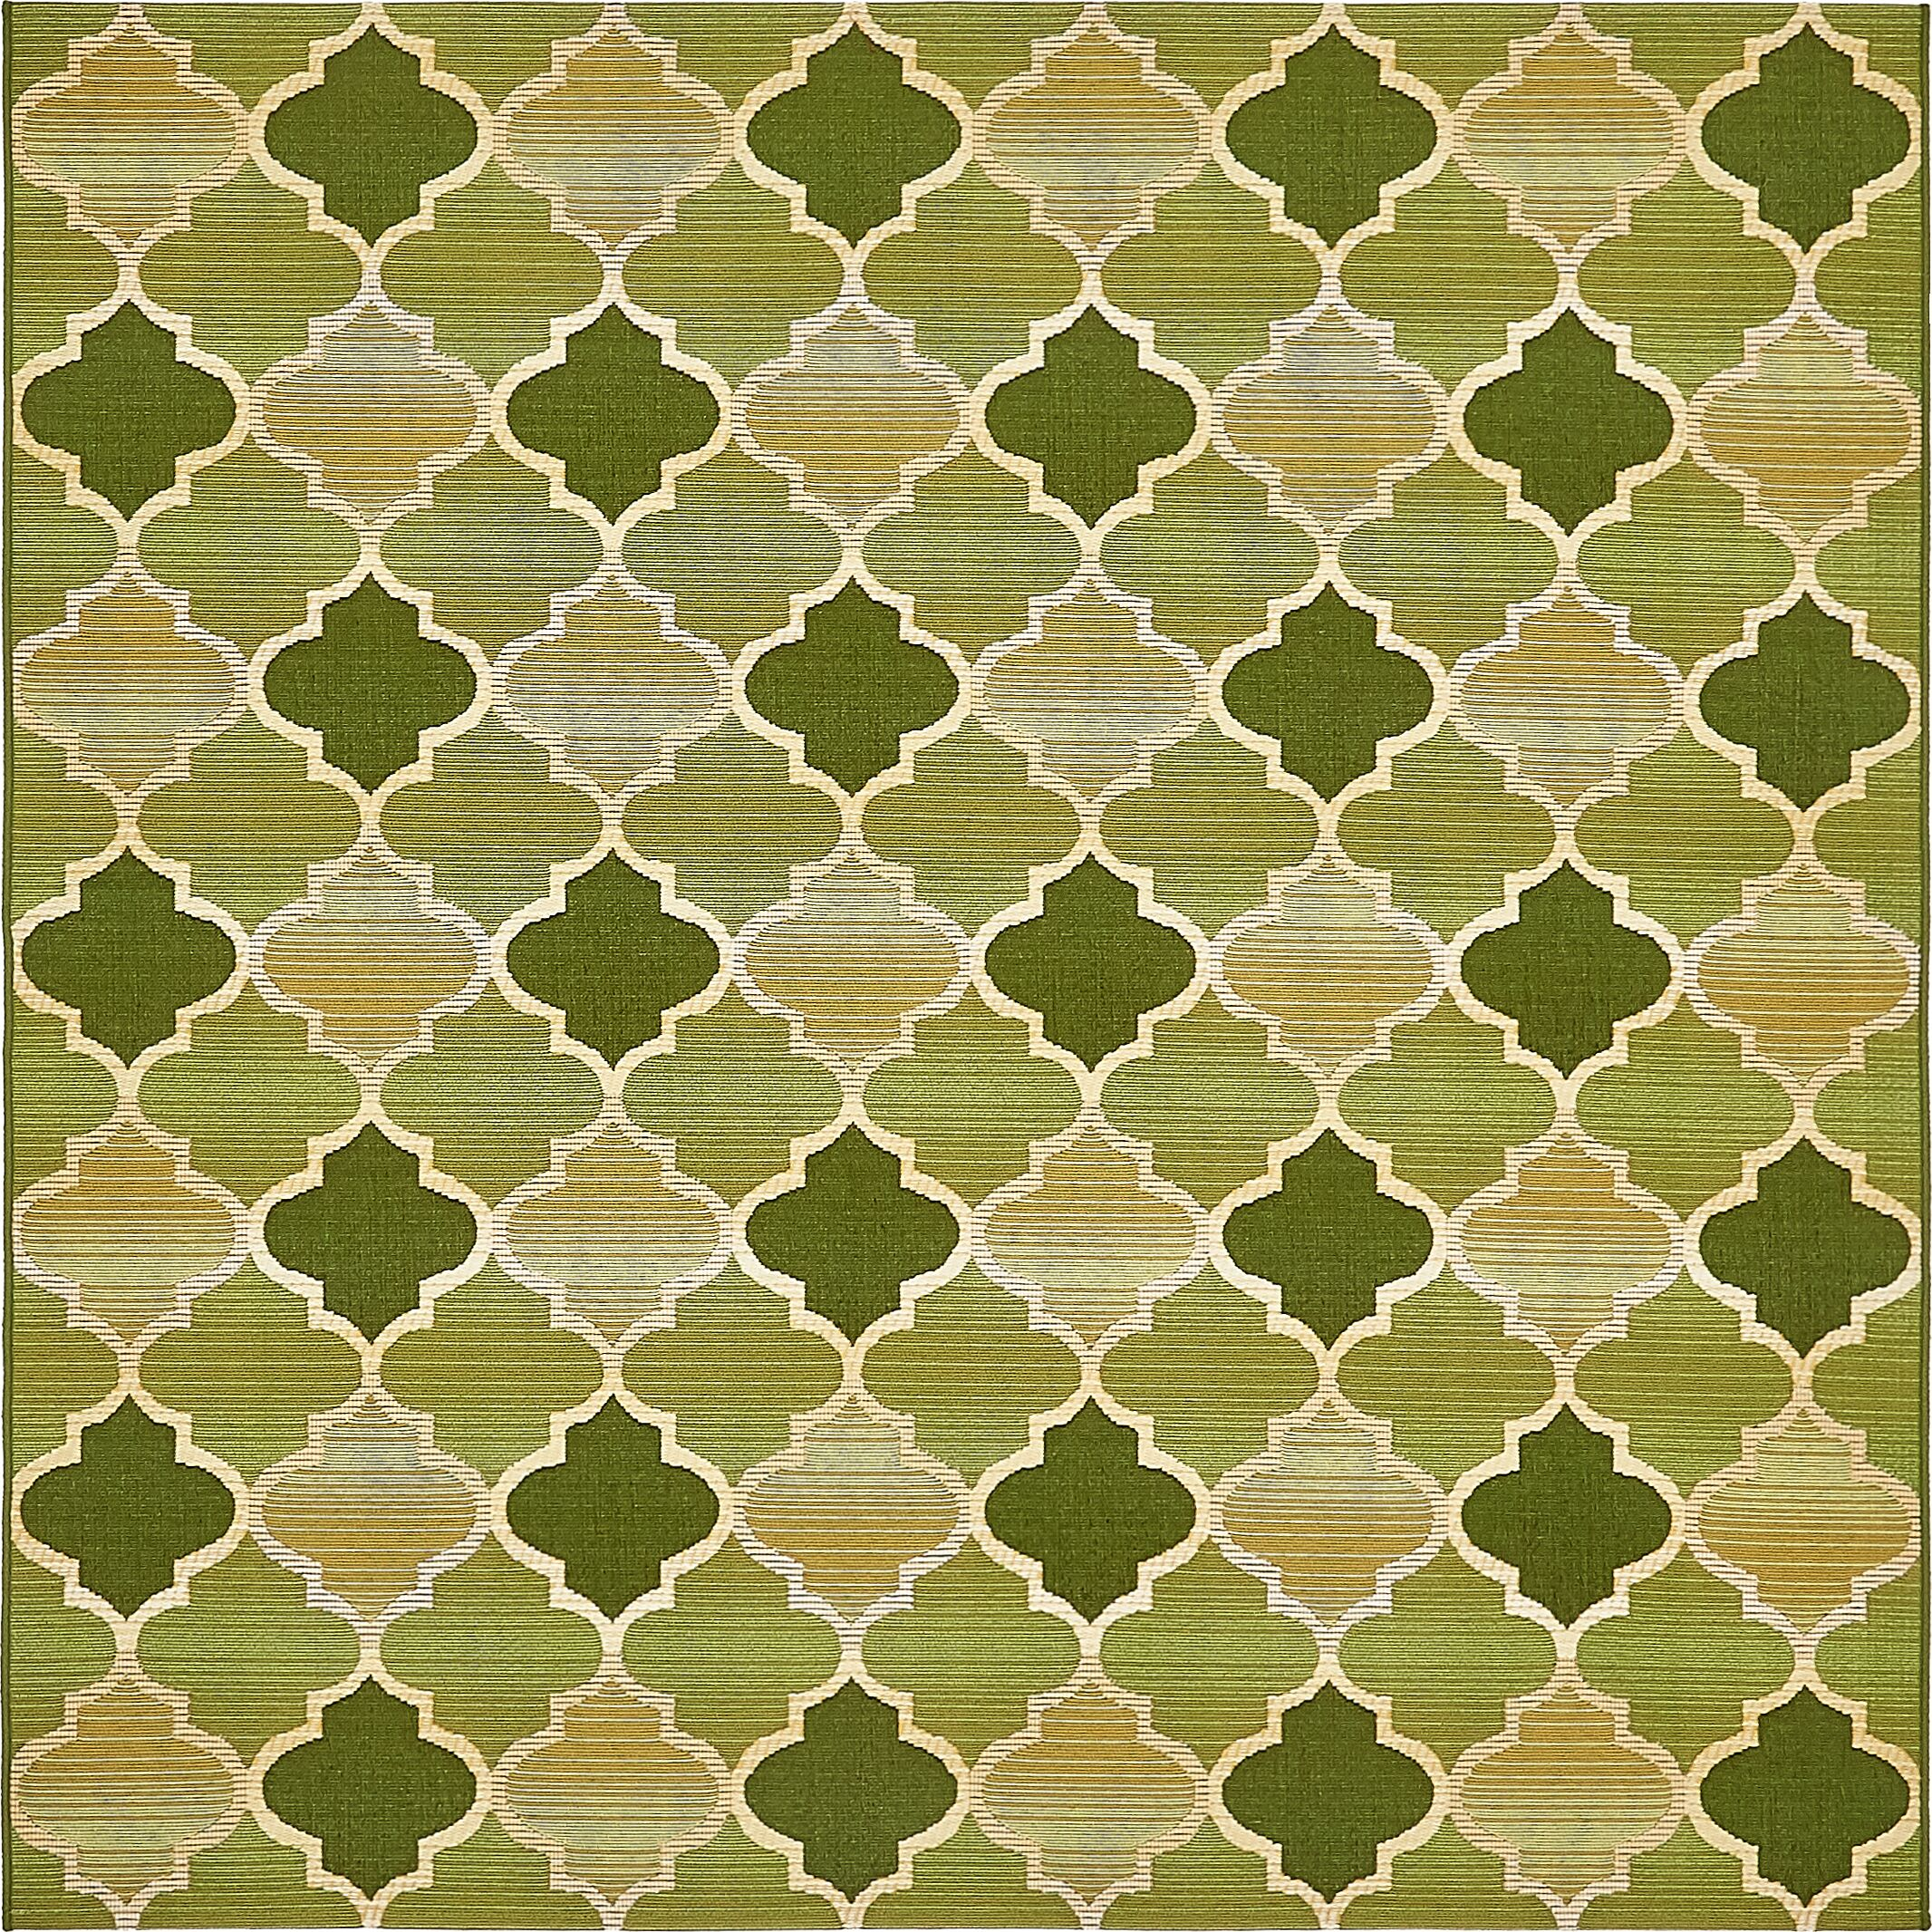 Alice Green Indoor/Outdoor Area Rug Rug Size: Square 6'